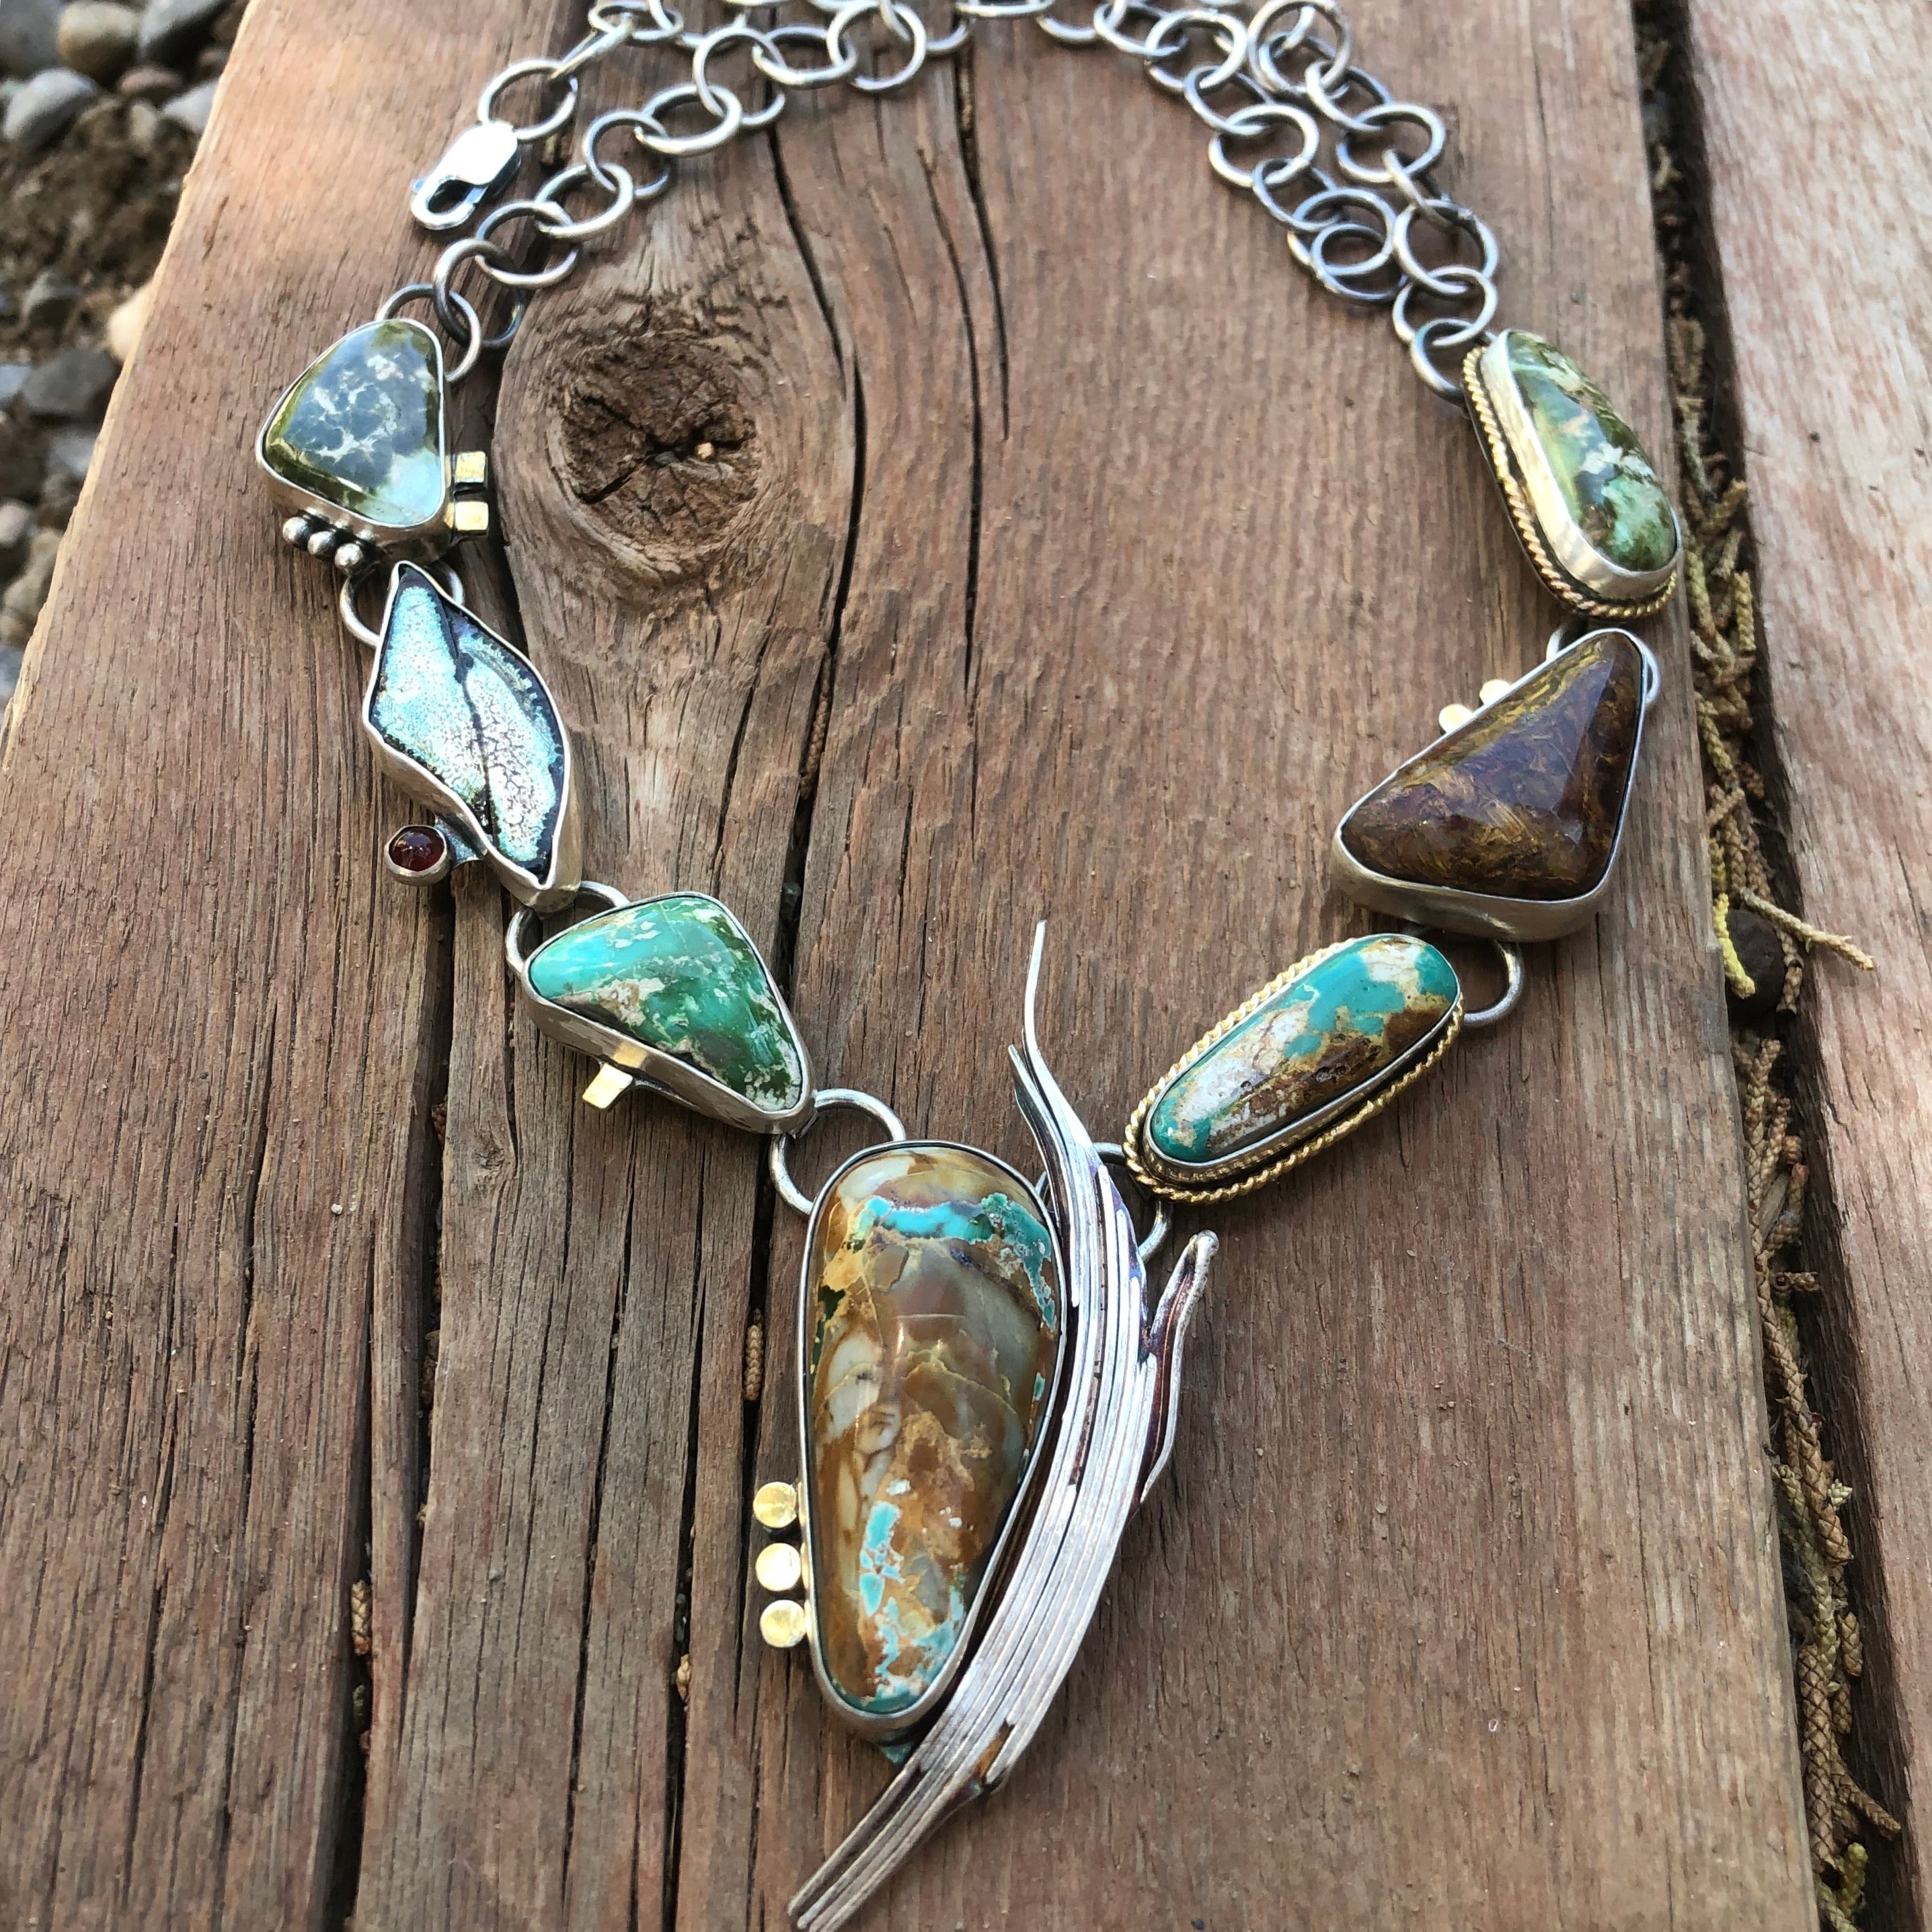 Stunning multi turquoise necklace